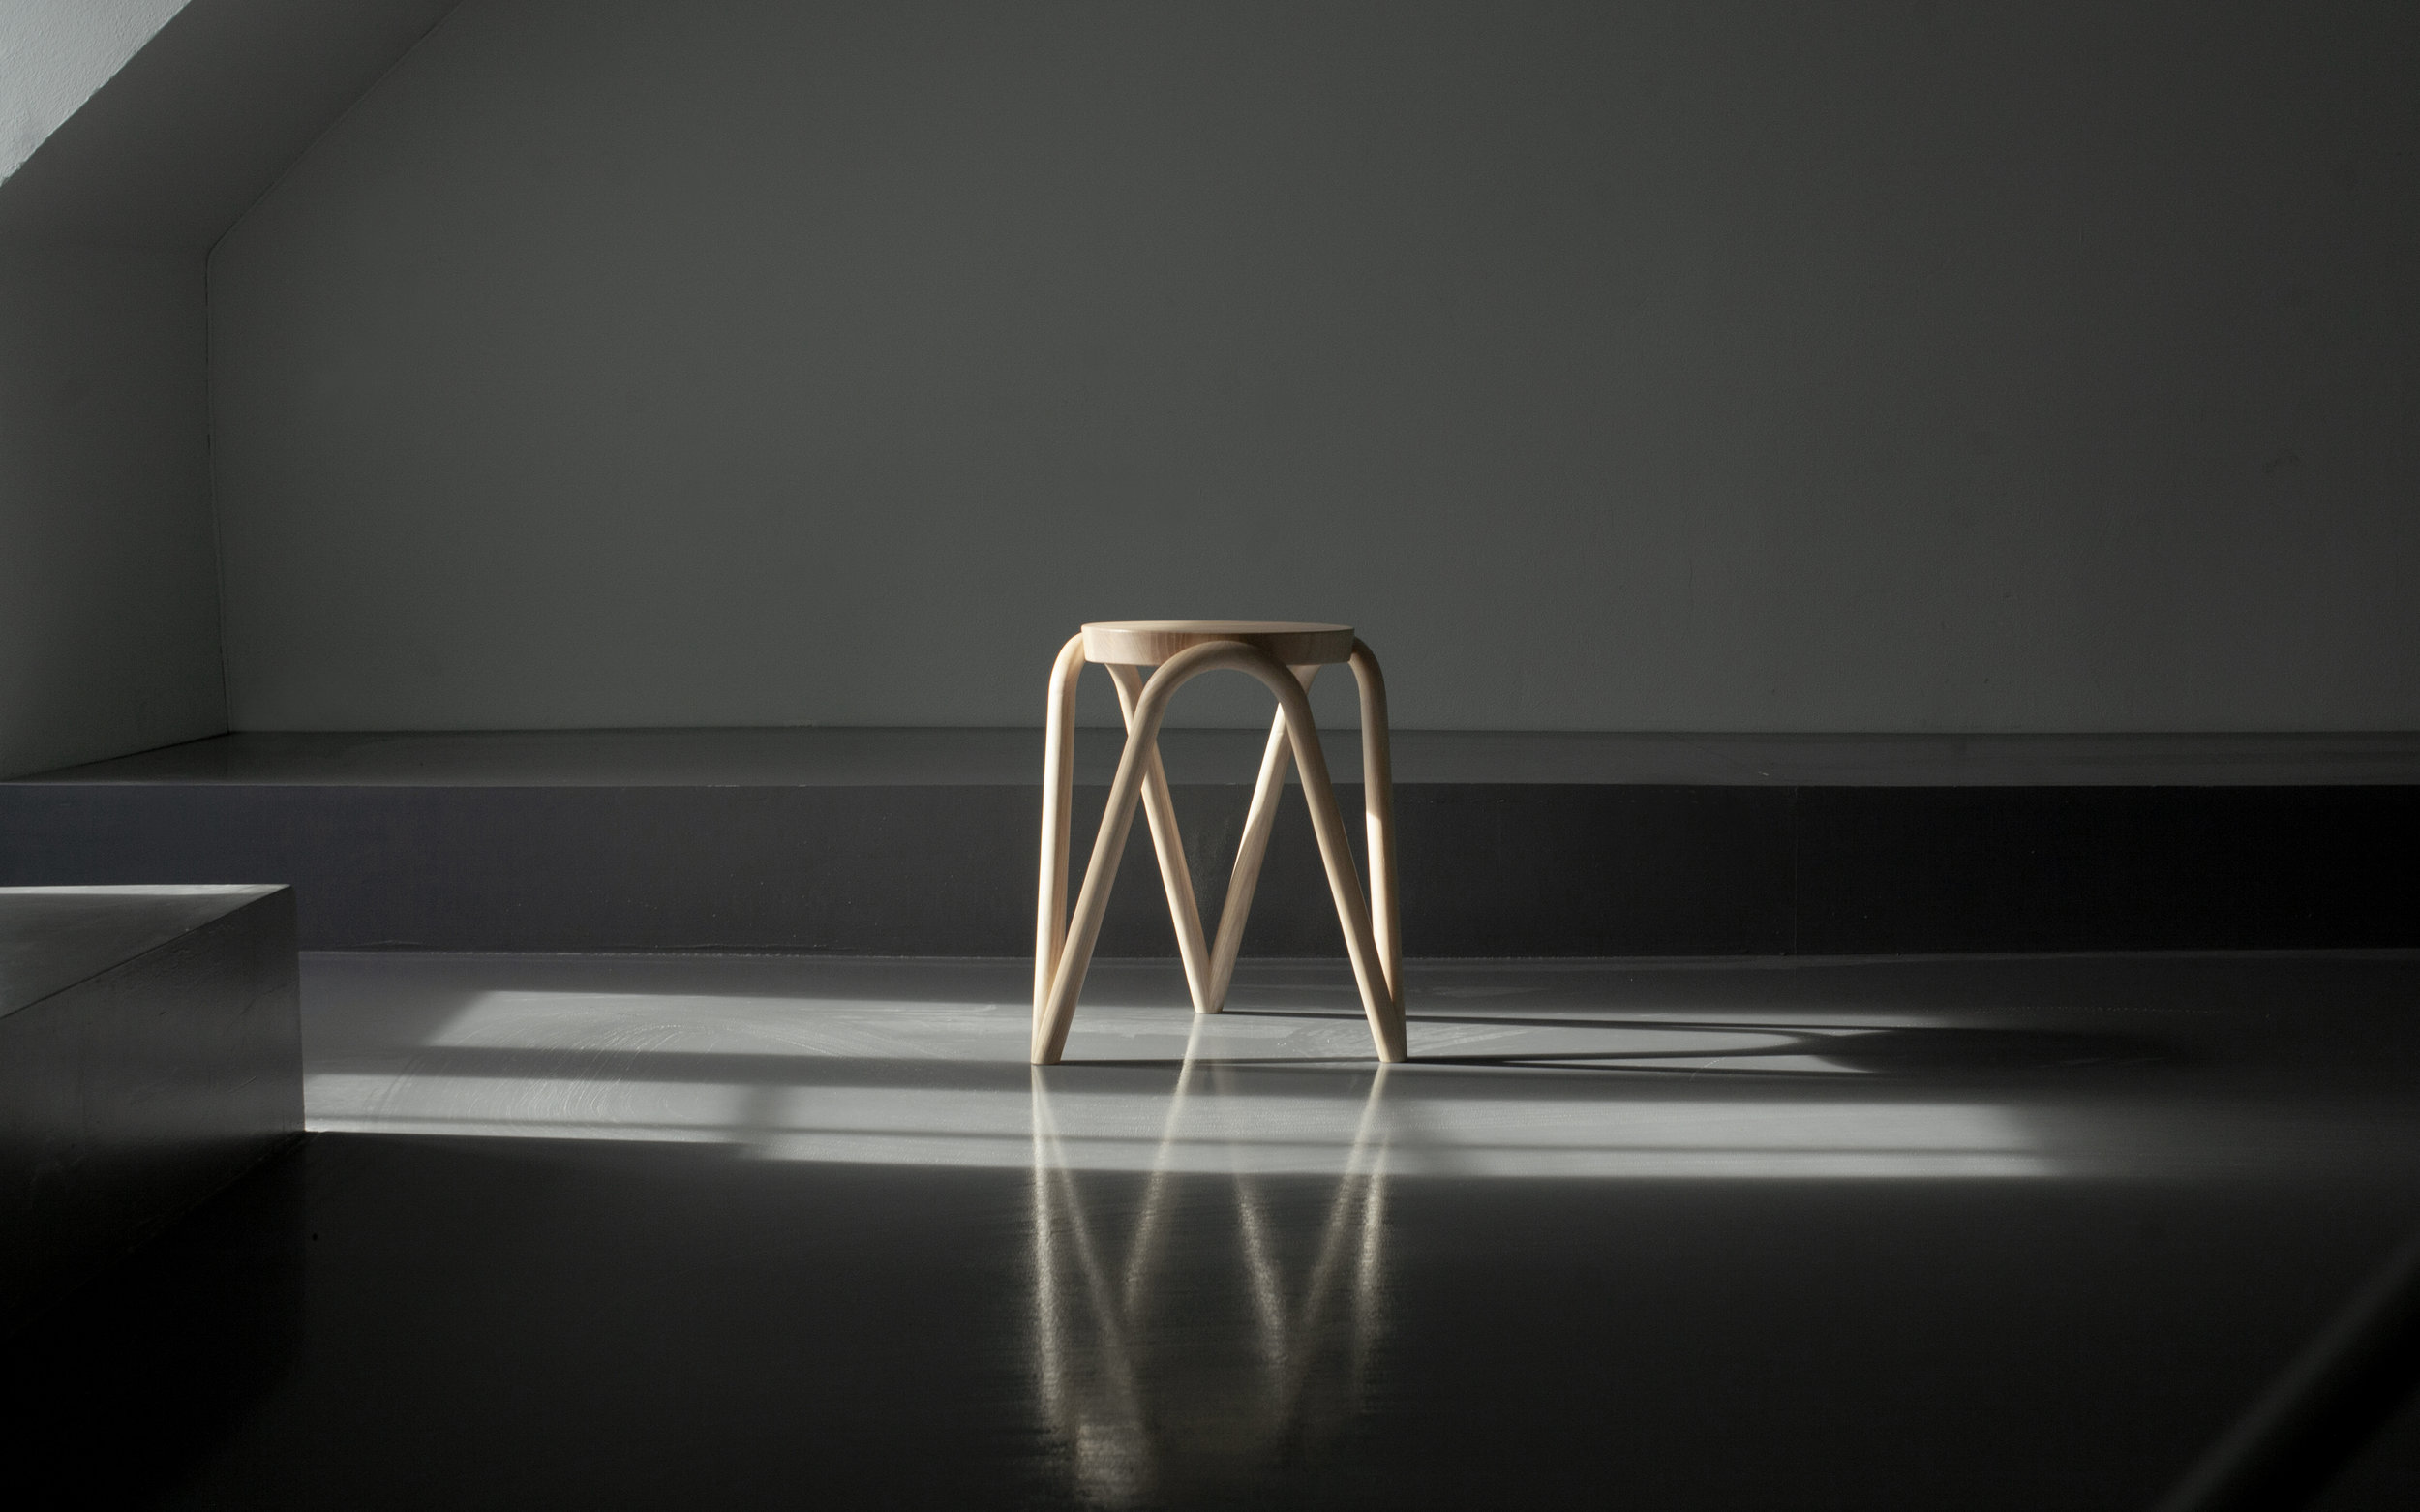 UN #101/256 The Vava Tabouret by Kristine Five Melvær  A stackable stool that combines classical elements in a new way. The name is inspired by the legs which moves up and down around the stool in a steady rhythm, giving the furniture its recognizable character.